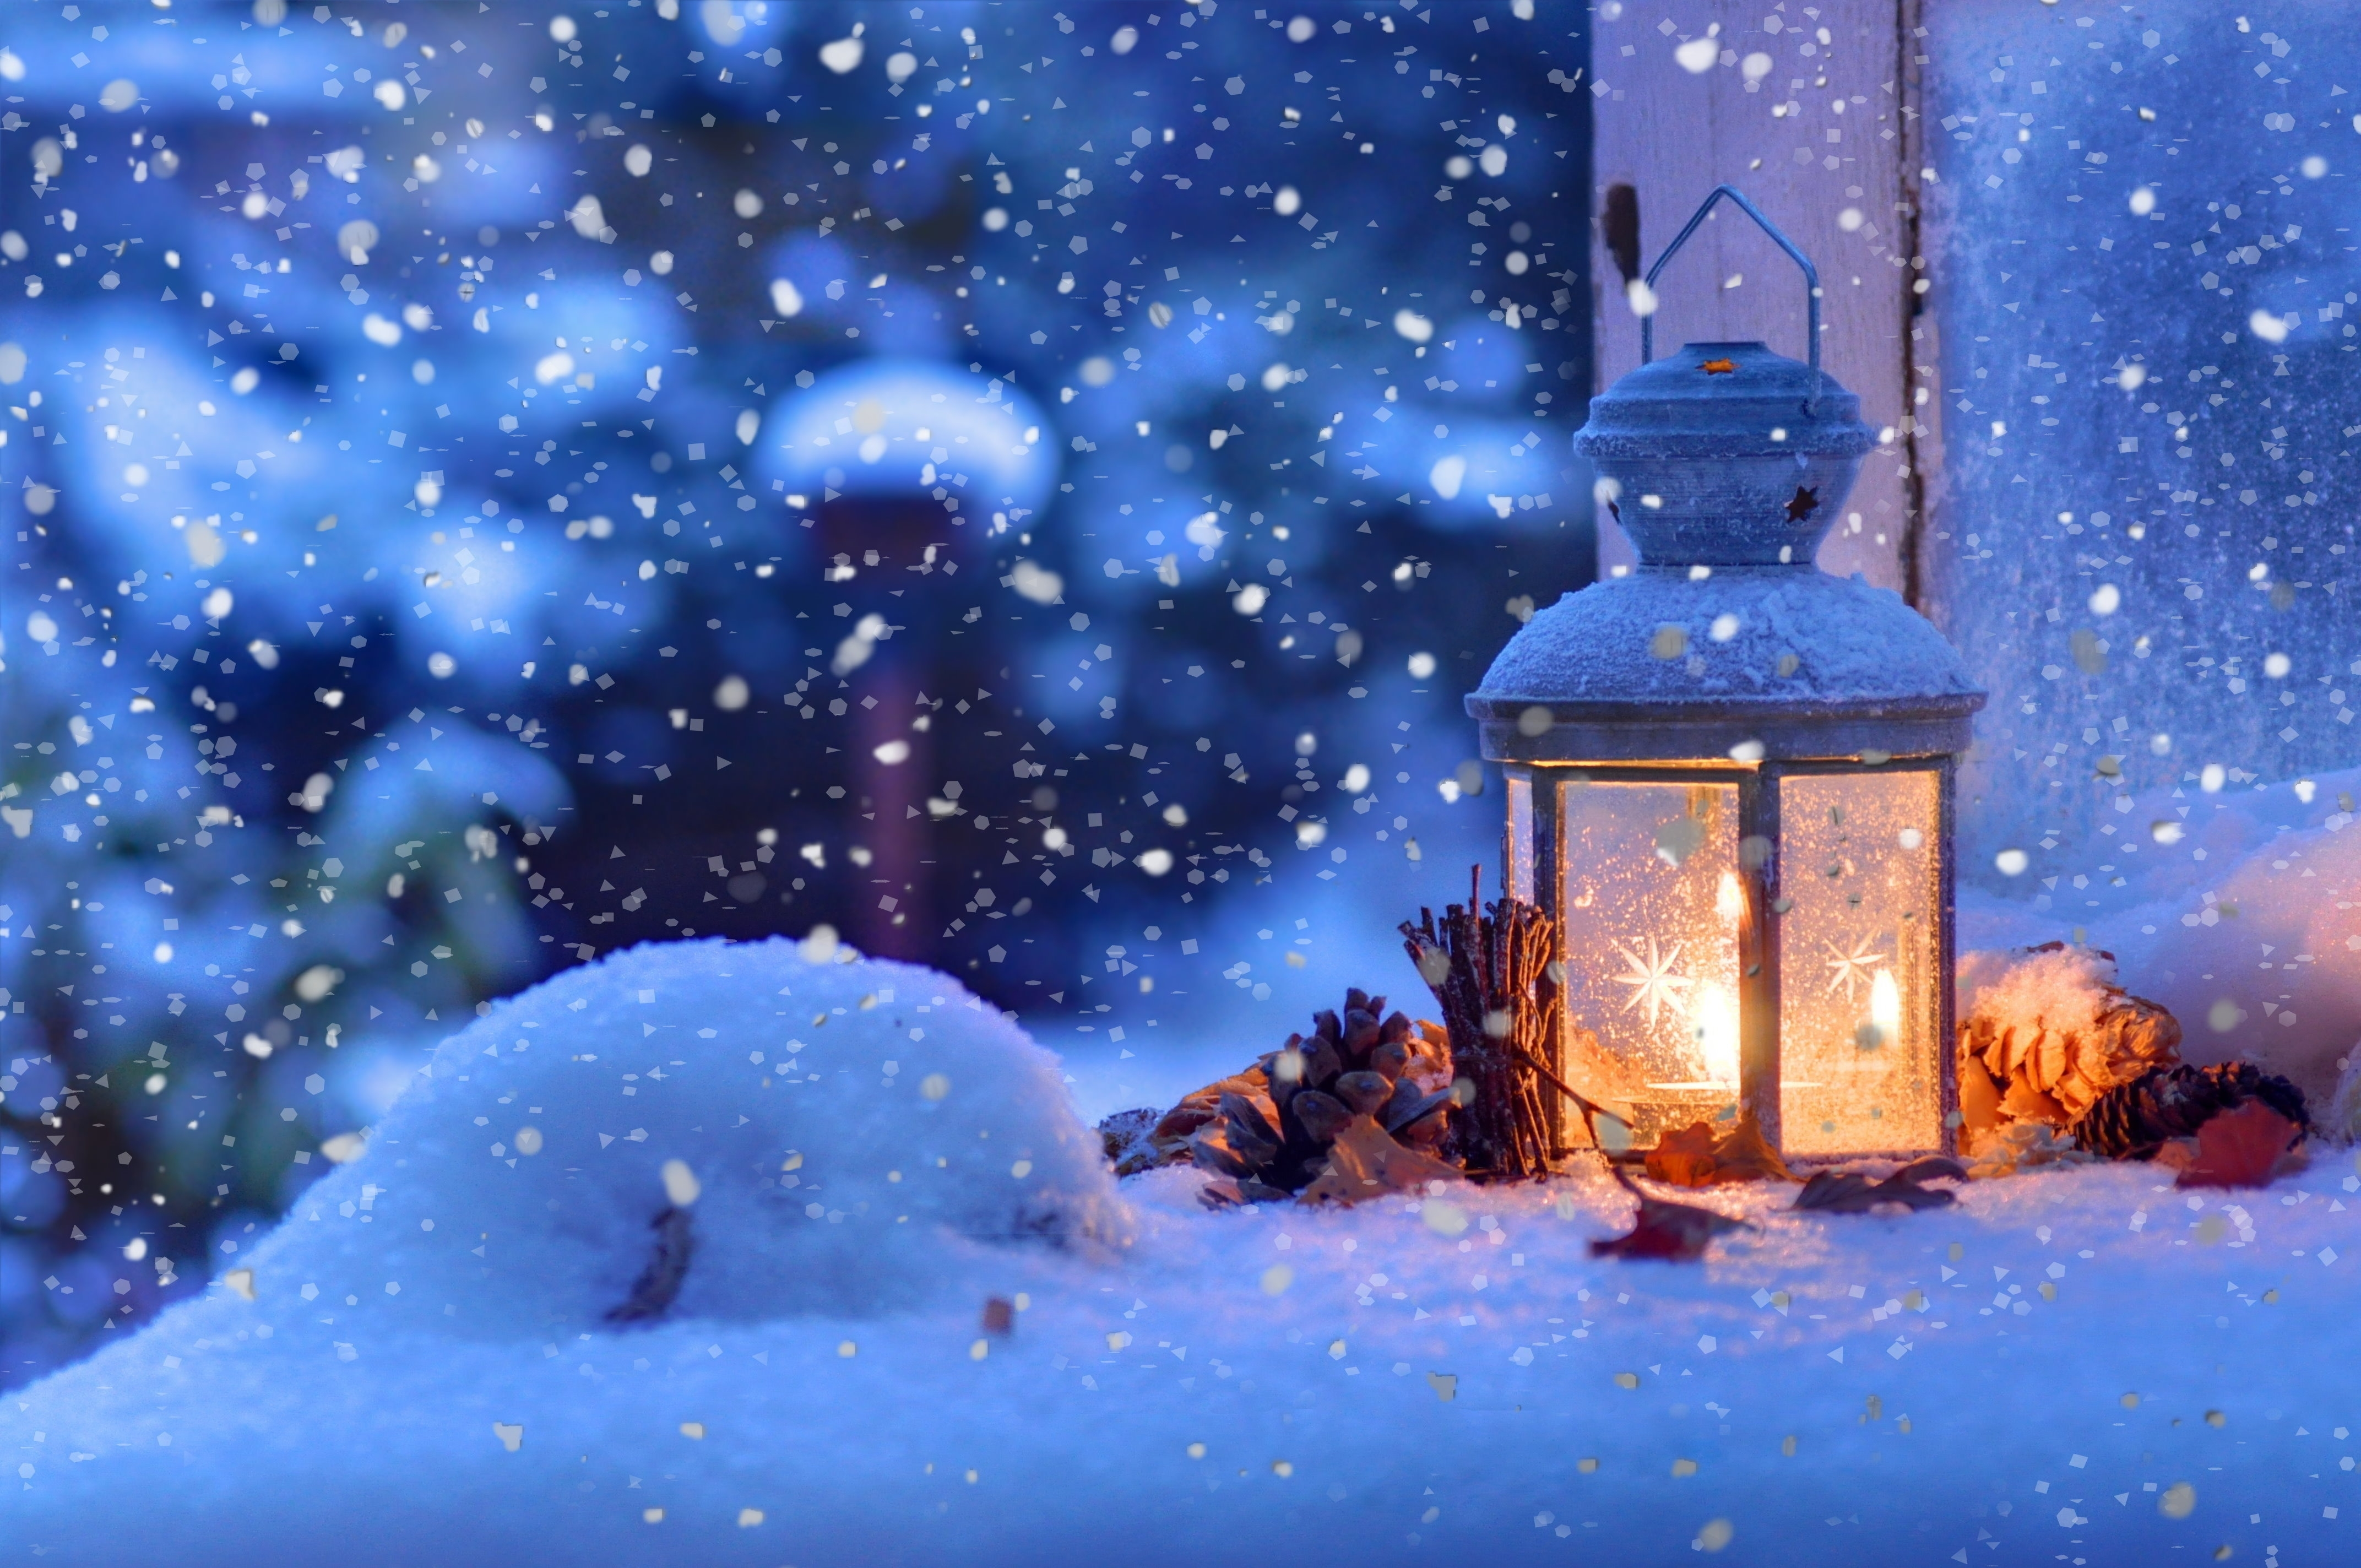 377 snowfall hd wallpapers   background images - wallpaper abyss